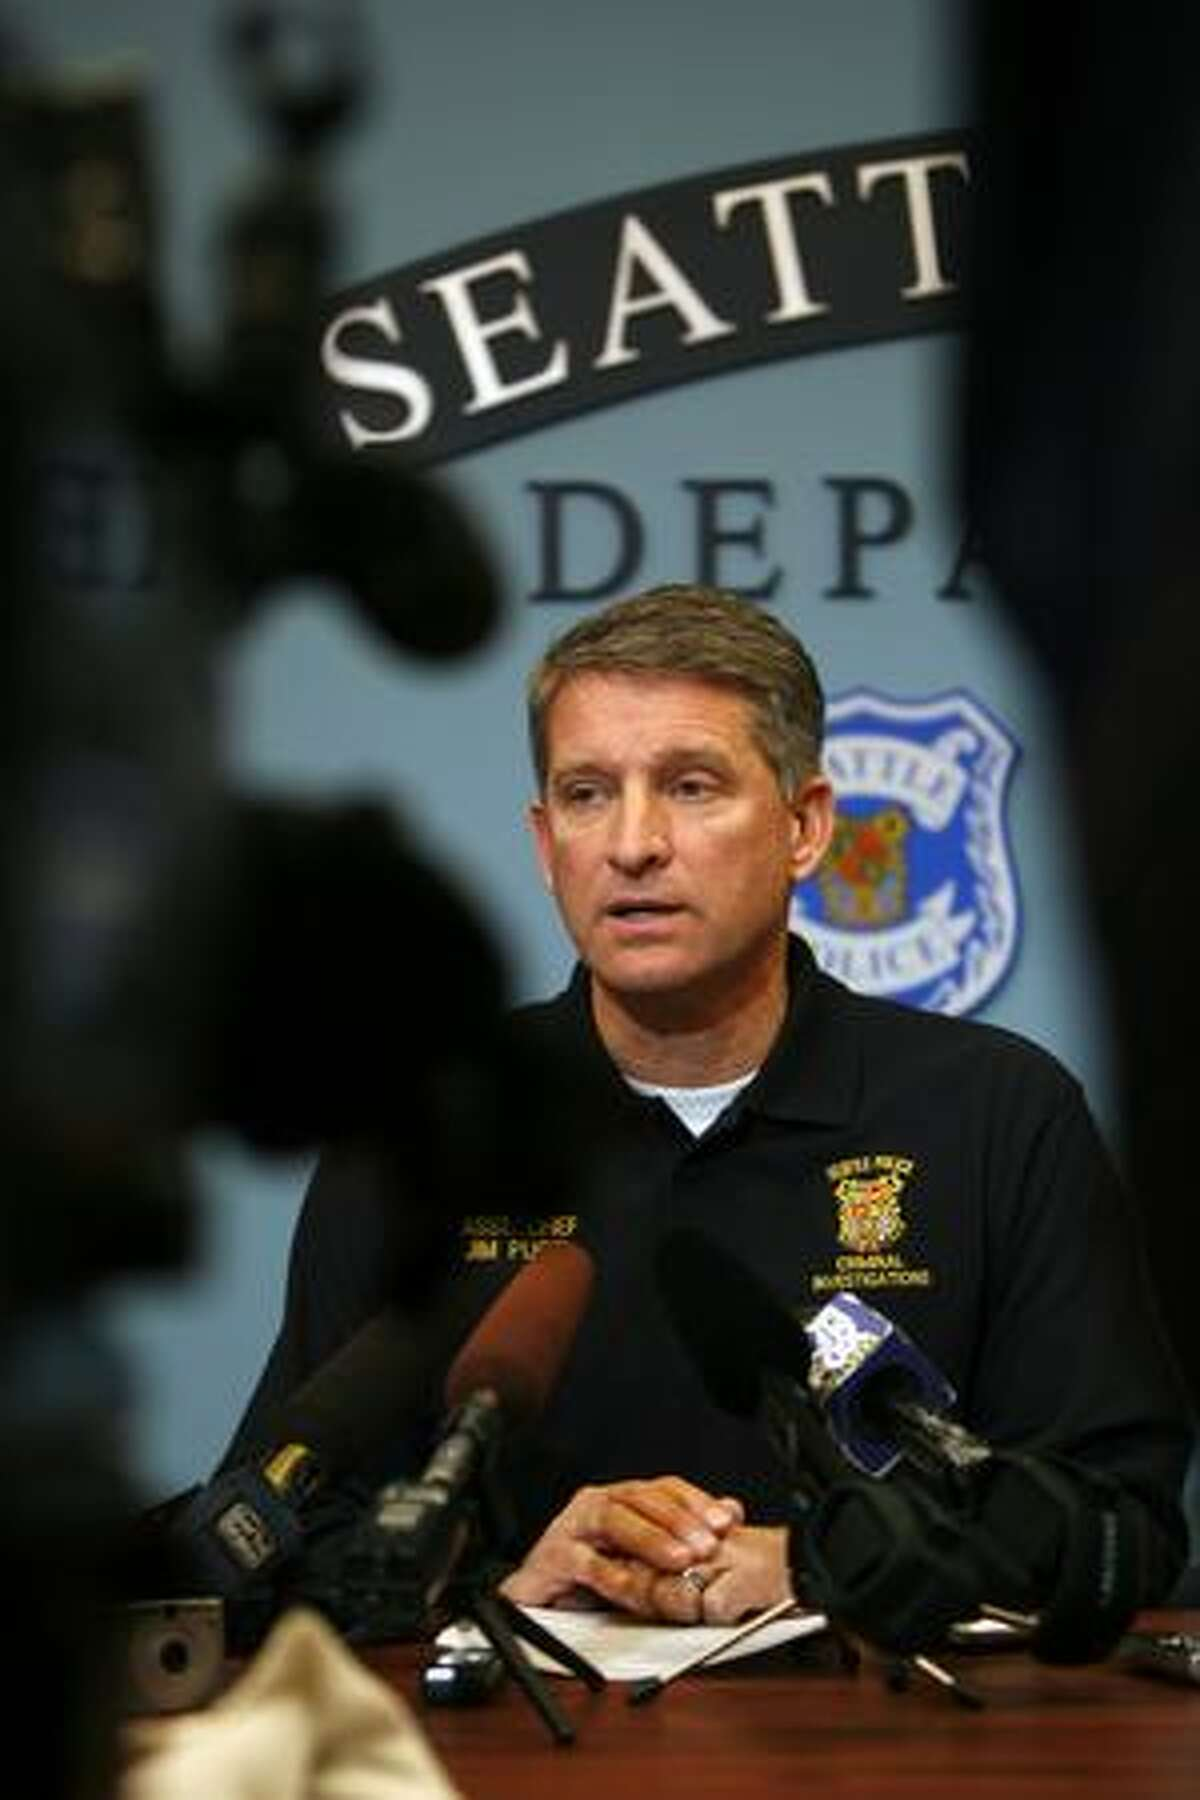 Assistant Seattle Police Chief Jim Pugel briefs reporters on developments in the shooting death of Officer Tim Brenton and wounding of Officer Britt Sweeney. The suspect, Christopher J. Monfort, was shot Friday at his Tukwila apartment. Police also linked him to the Oct. 22 arson of four police vehicles. Follow this link to hear audio from the briefing.